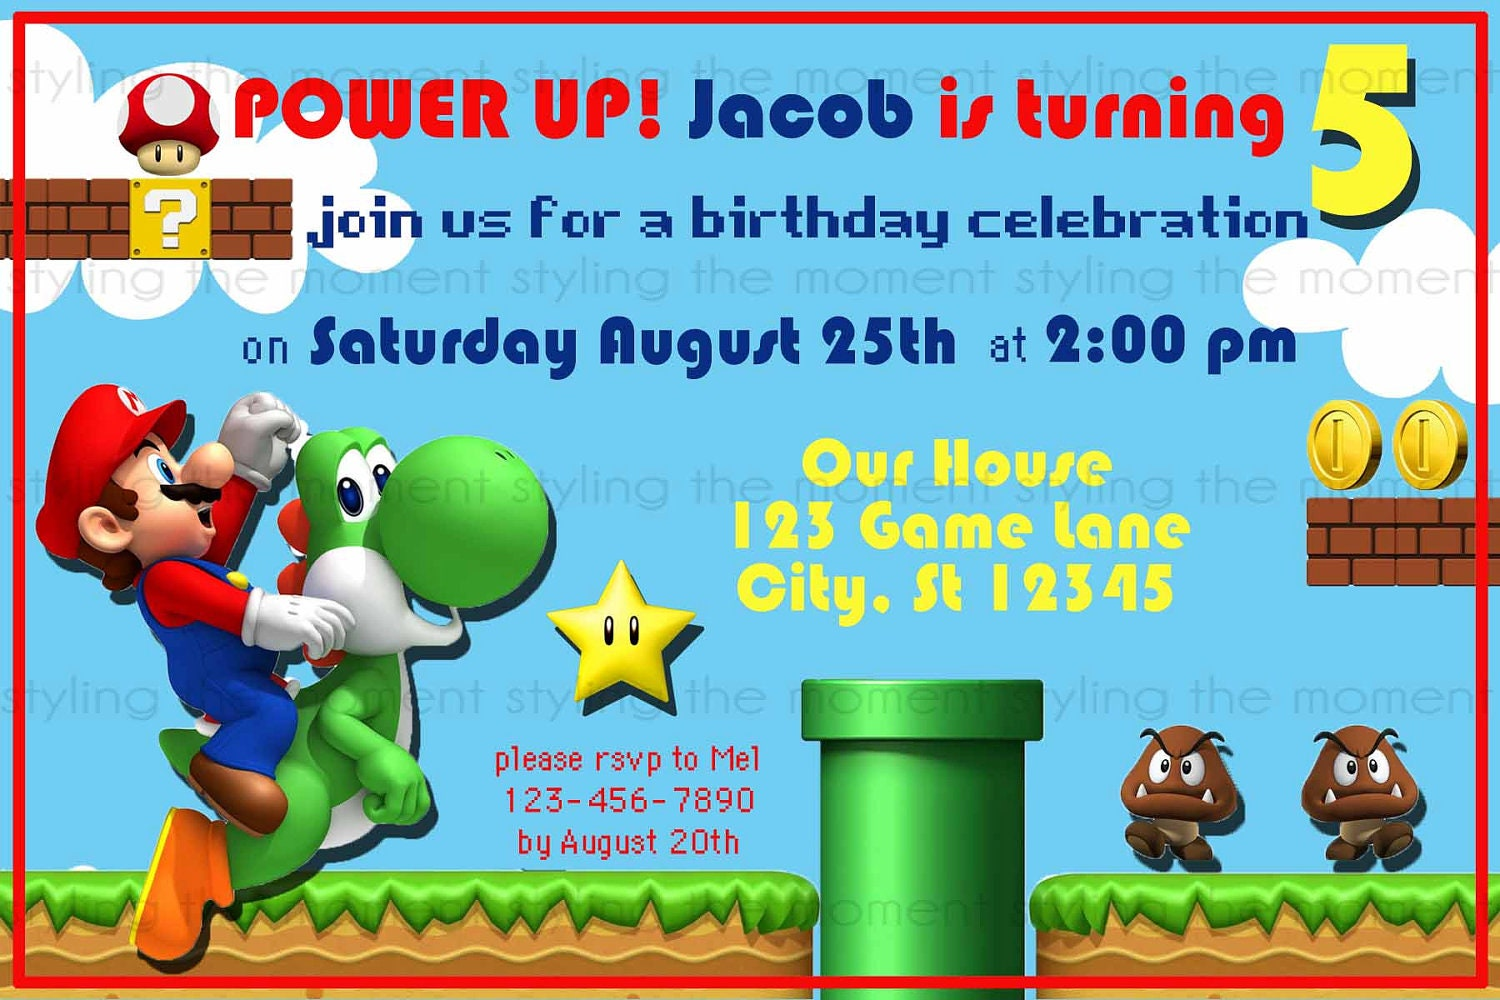 Super Mario Birthday Invitations is an amazing ideas you had to choose for invitation design